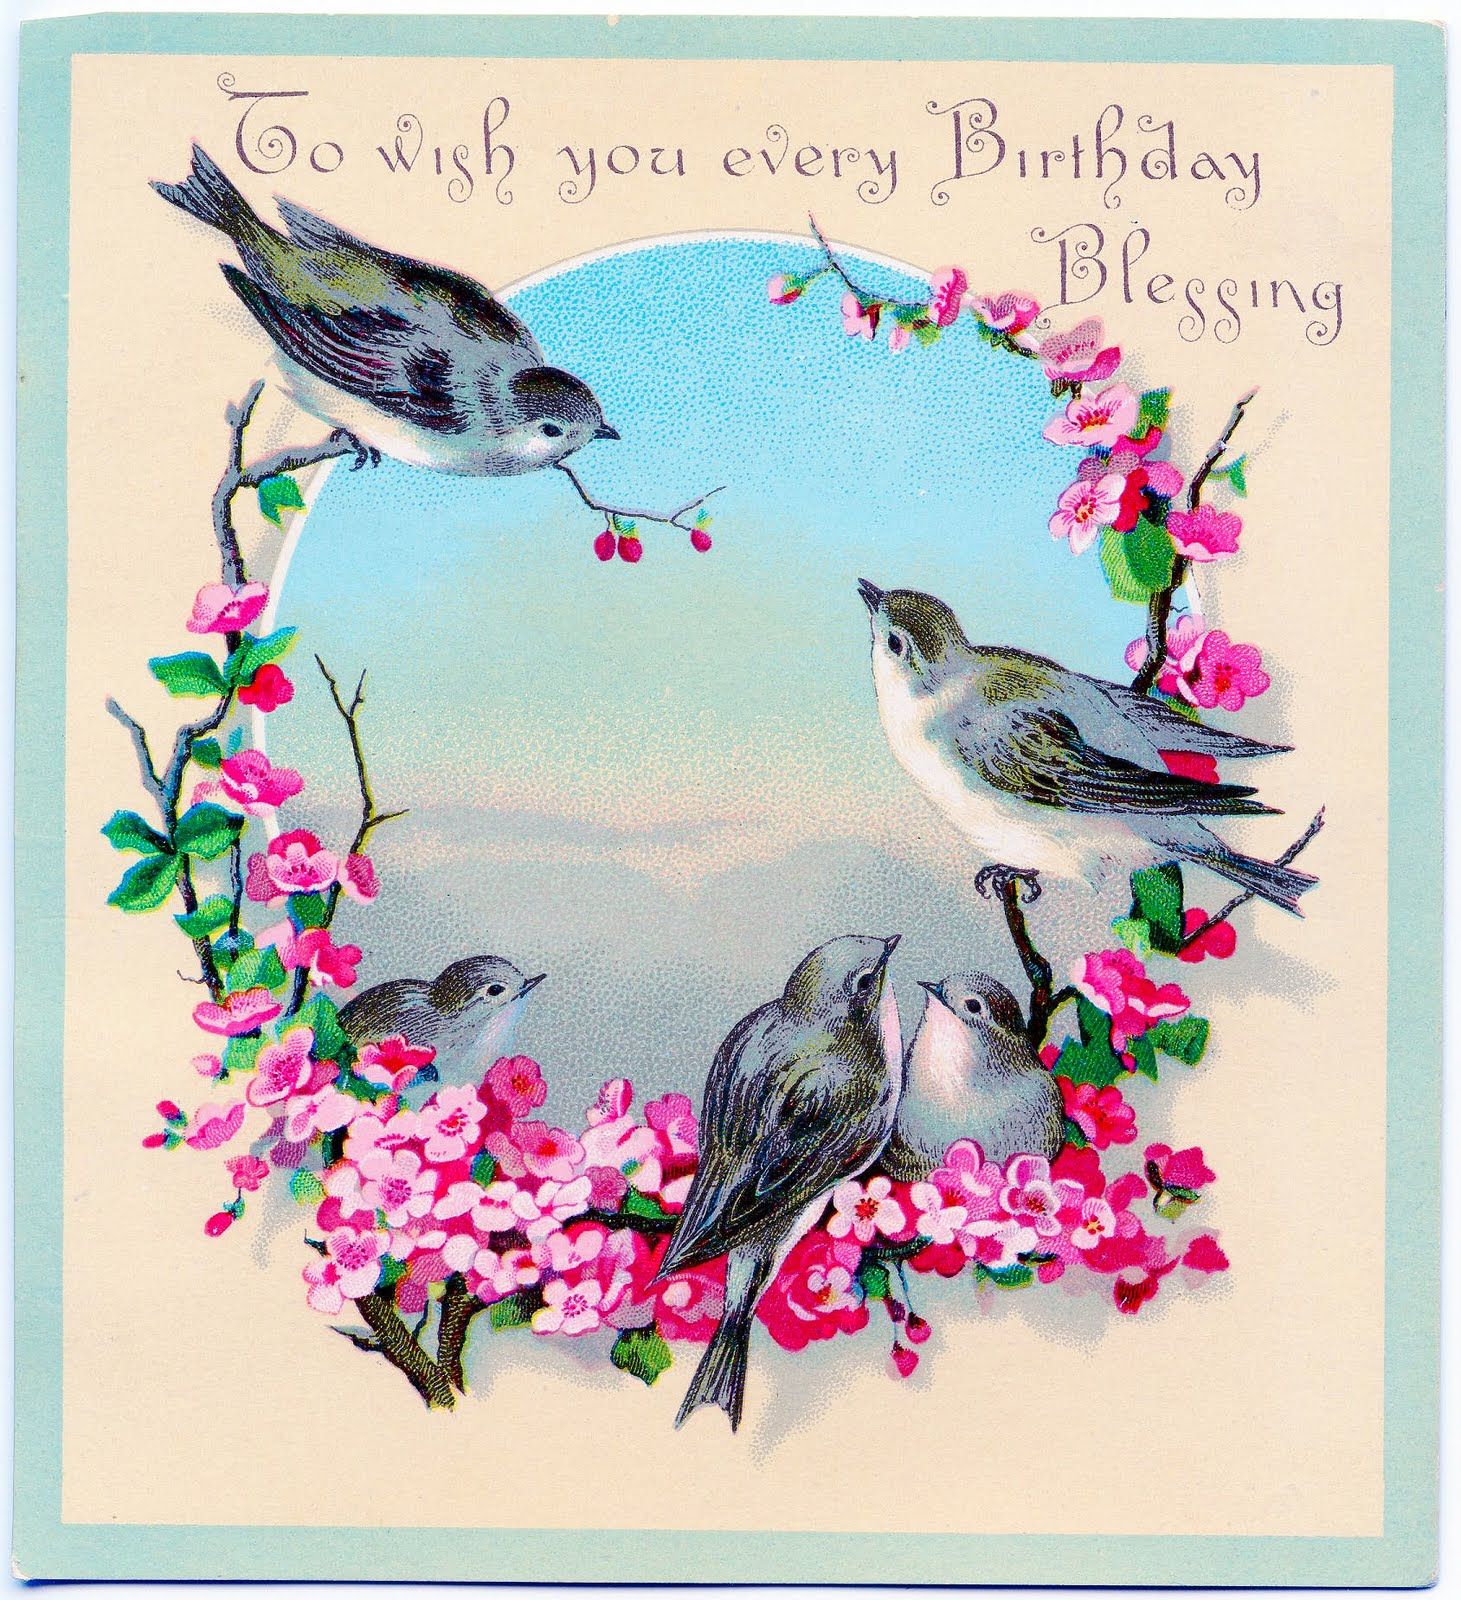 birthday wishes clip art ; 1birthdaybirds-graphicsfairy012